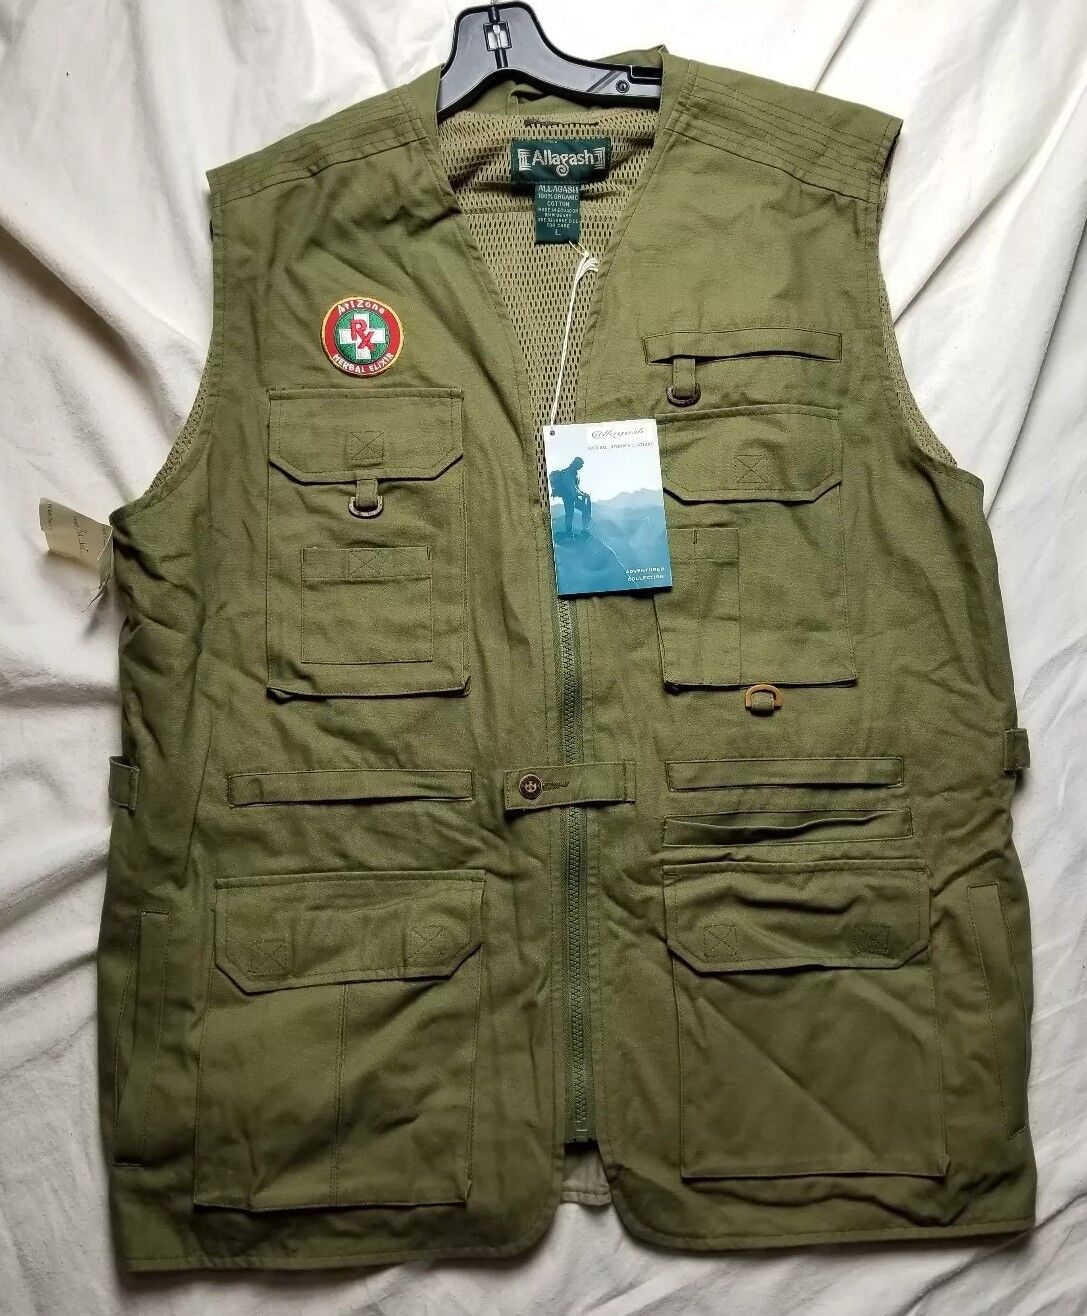 Allagash ARIZONA ICE TEA Photography Fishing Hiking Birding Vest Organic  LARGE